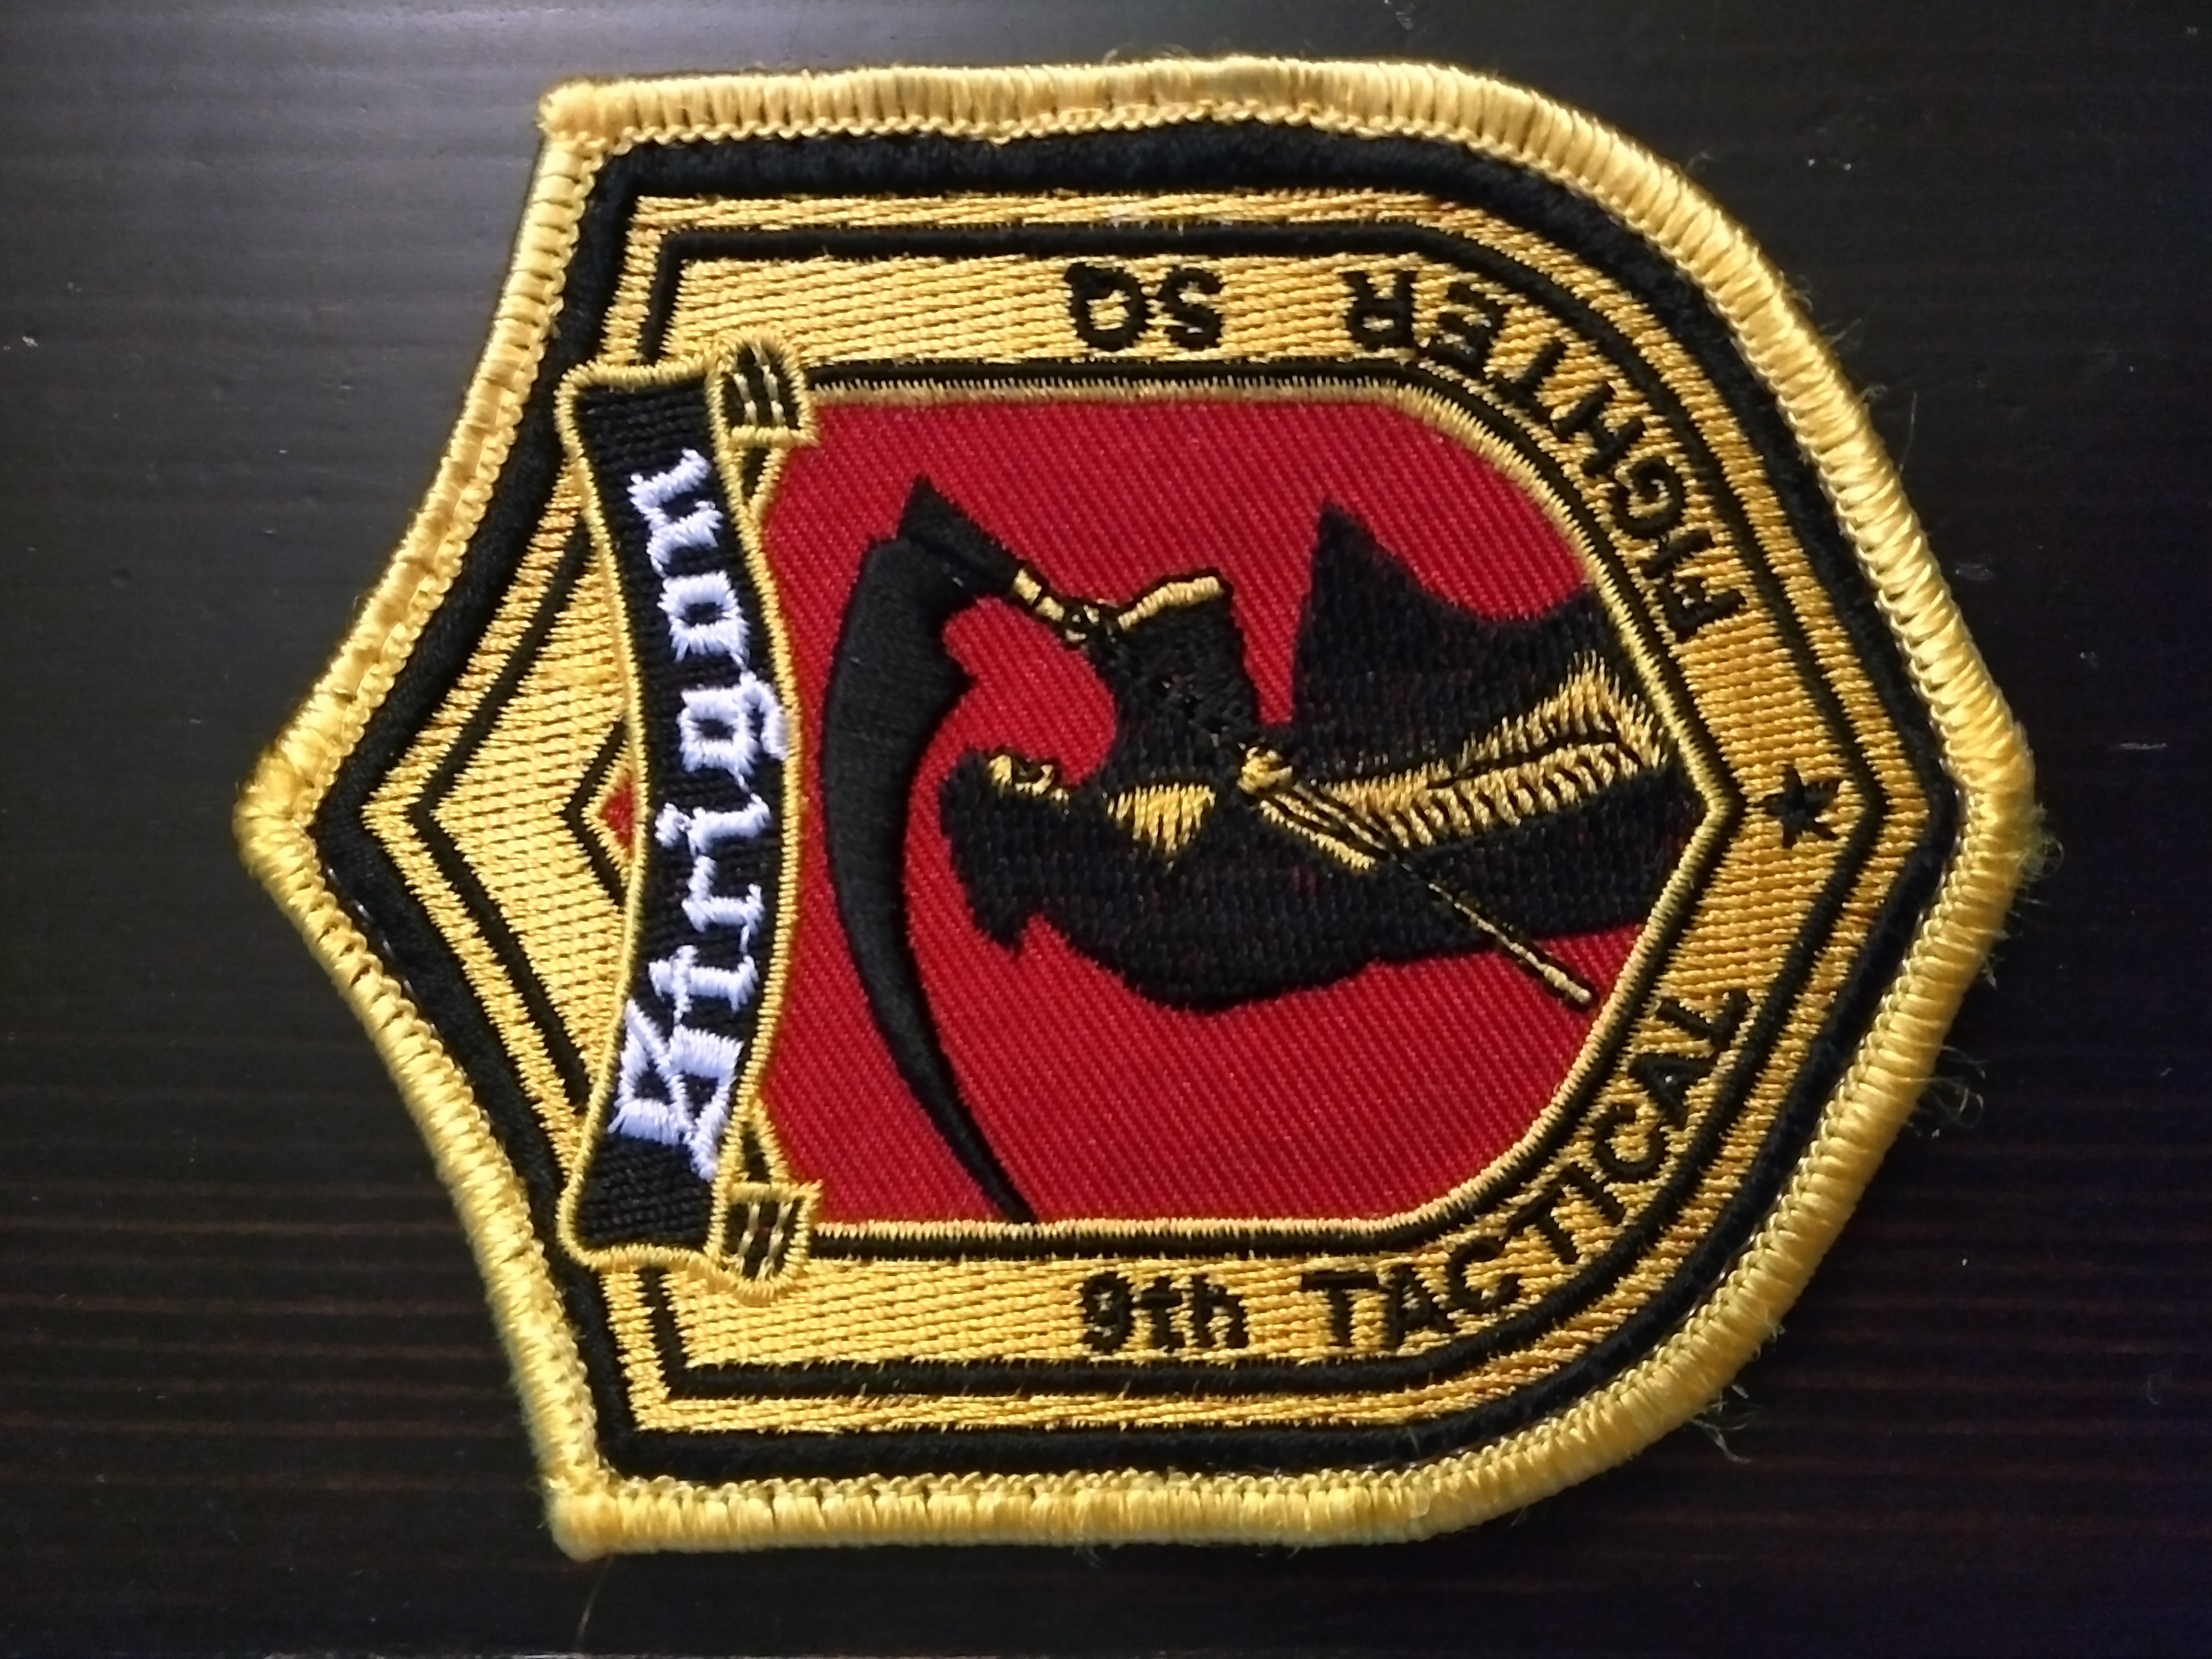 strigon squadron patch strangereal patch store online store powered by storenvy. Black Bedroom Furniture Sets. Home Design Ideas